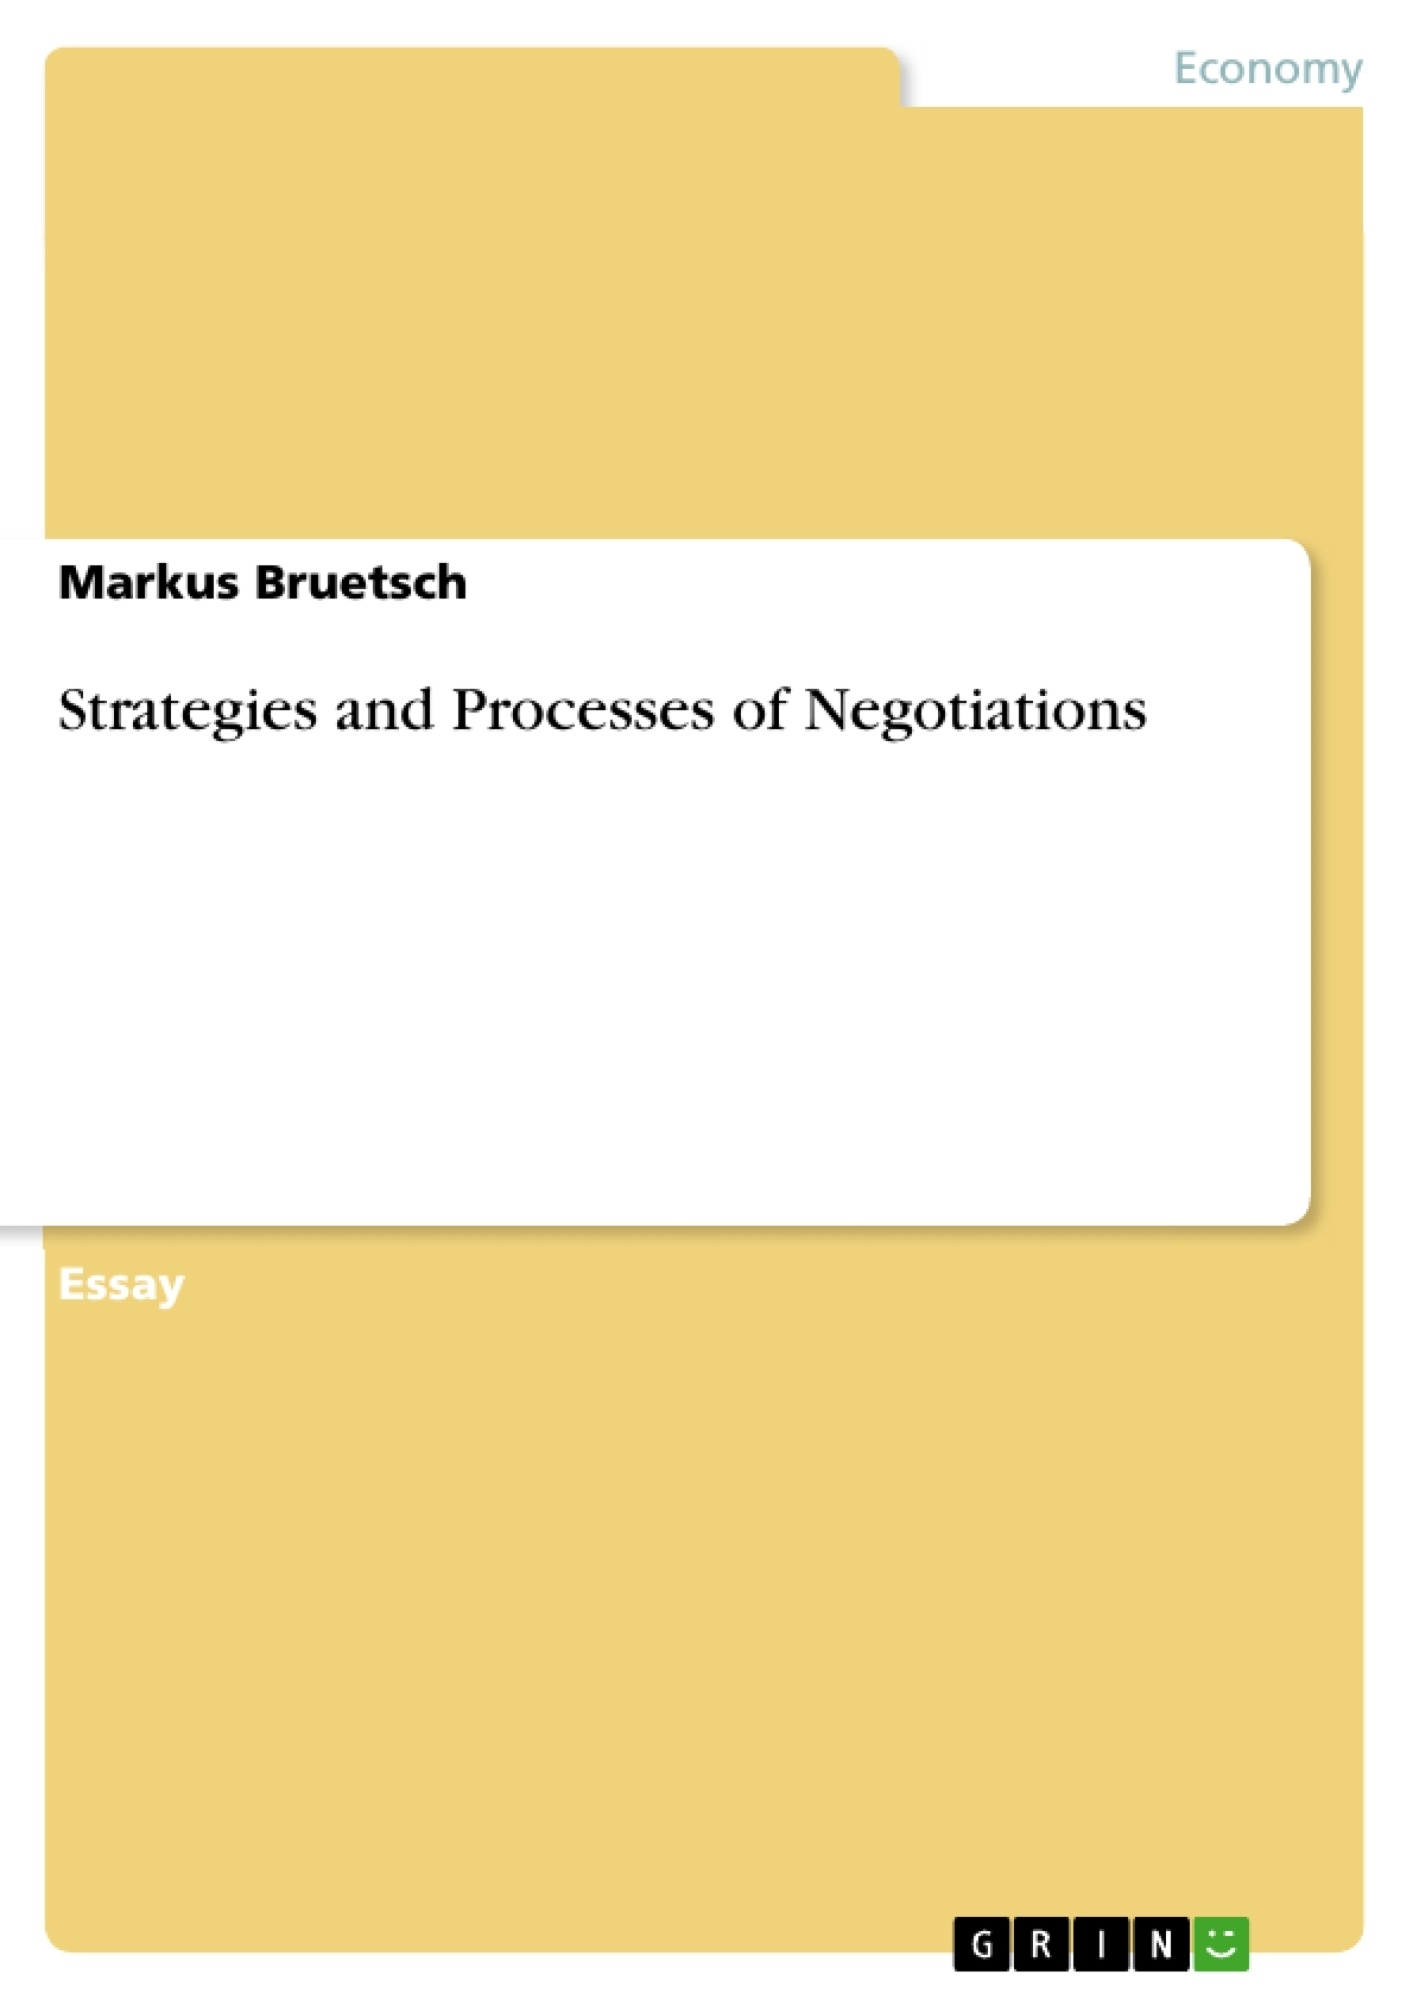 Title: Strategies and Processes of Negotiations